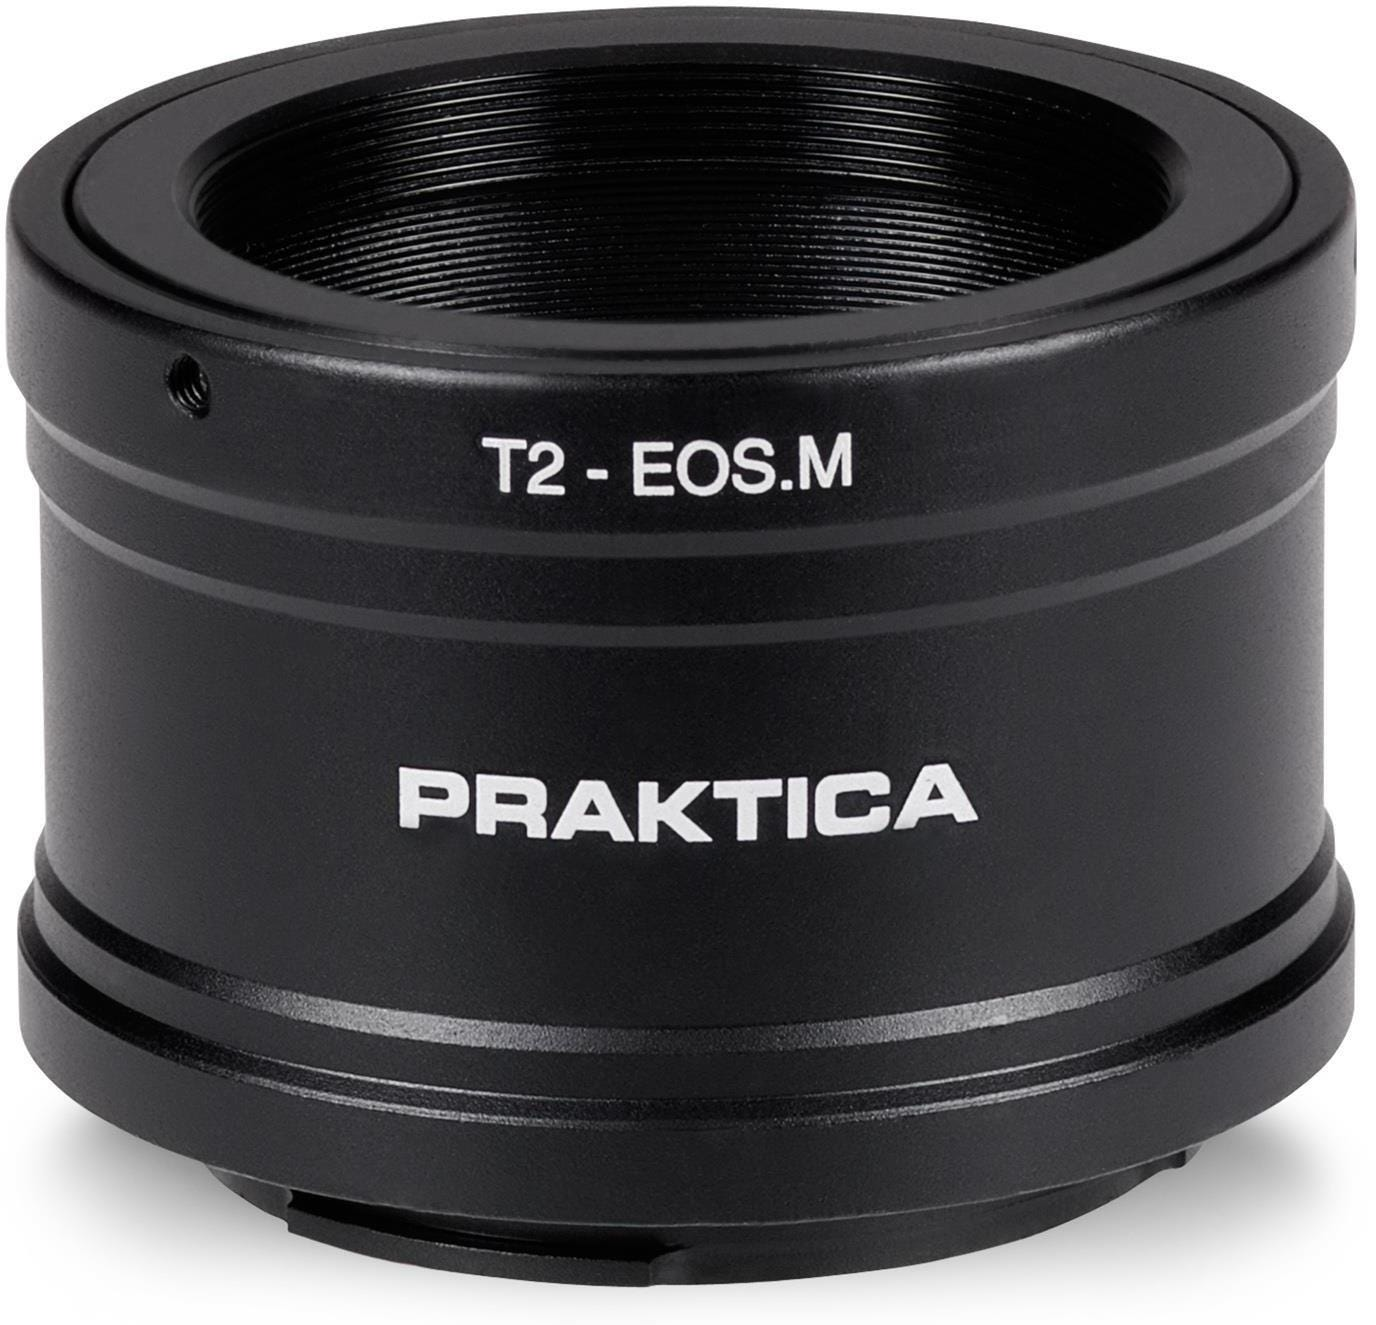 PRAKTICA T2 Canon EOS-M Mount adapter with 42mm thread for Spotting Scopes